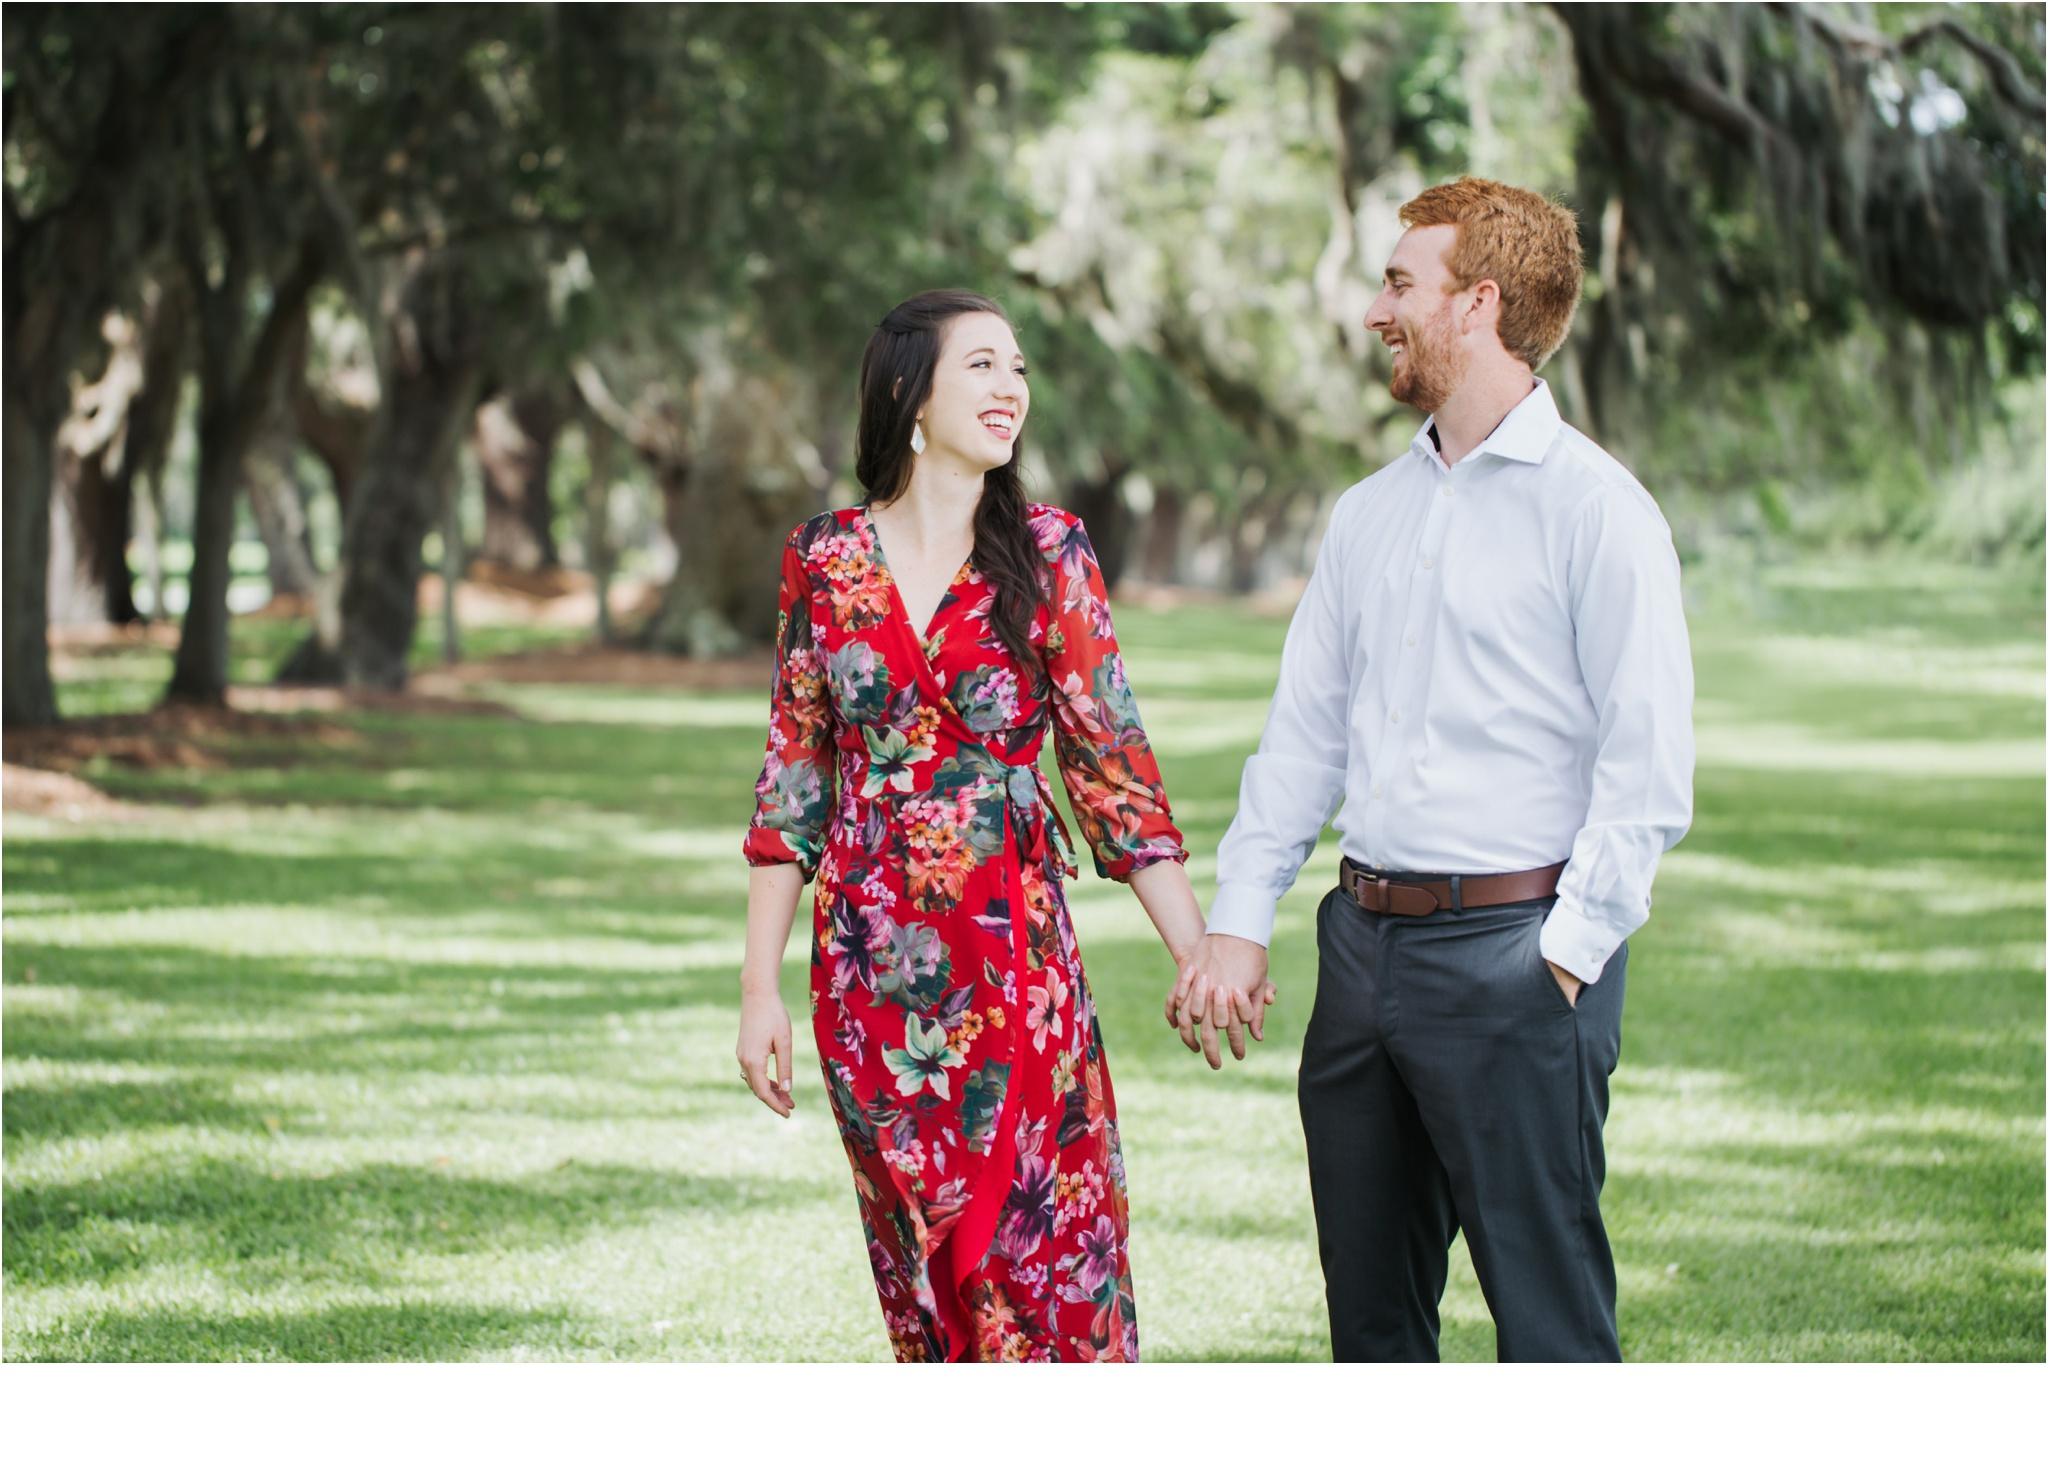 Rainey_Gregg_Photography_St._Simons_Island_Georgia_California_Wedding_Portrait_Photography_1421.jpg